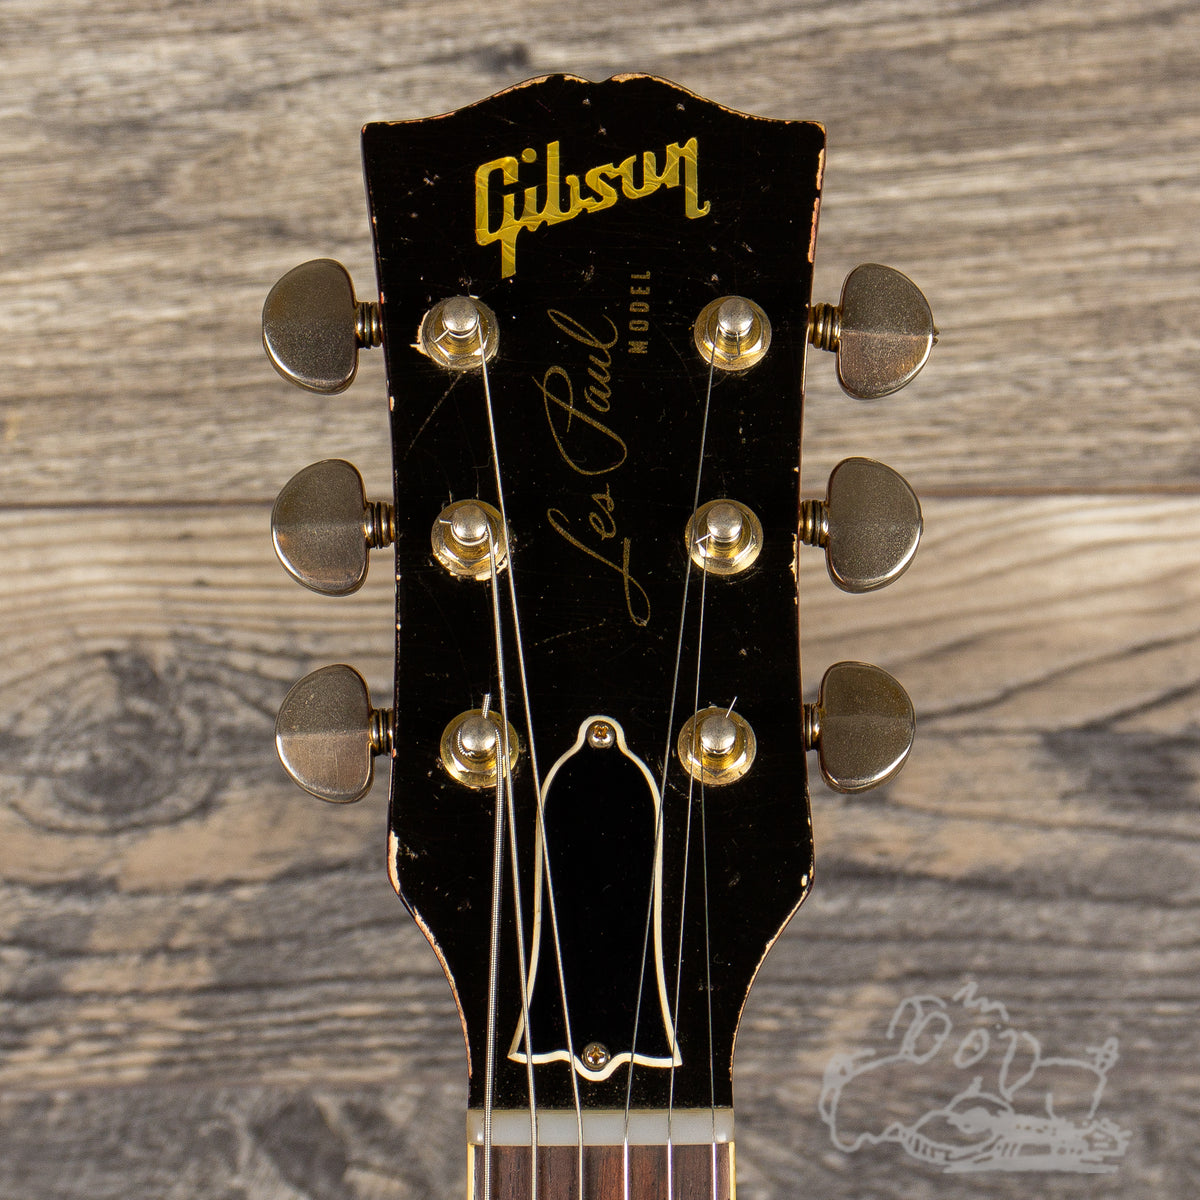 2015 Gibson Custom Shop Collectors Choice #29 with Historic Makeovers upgrades